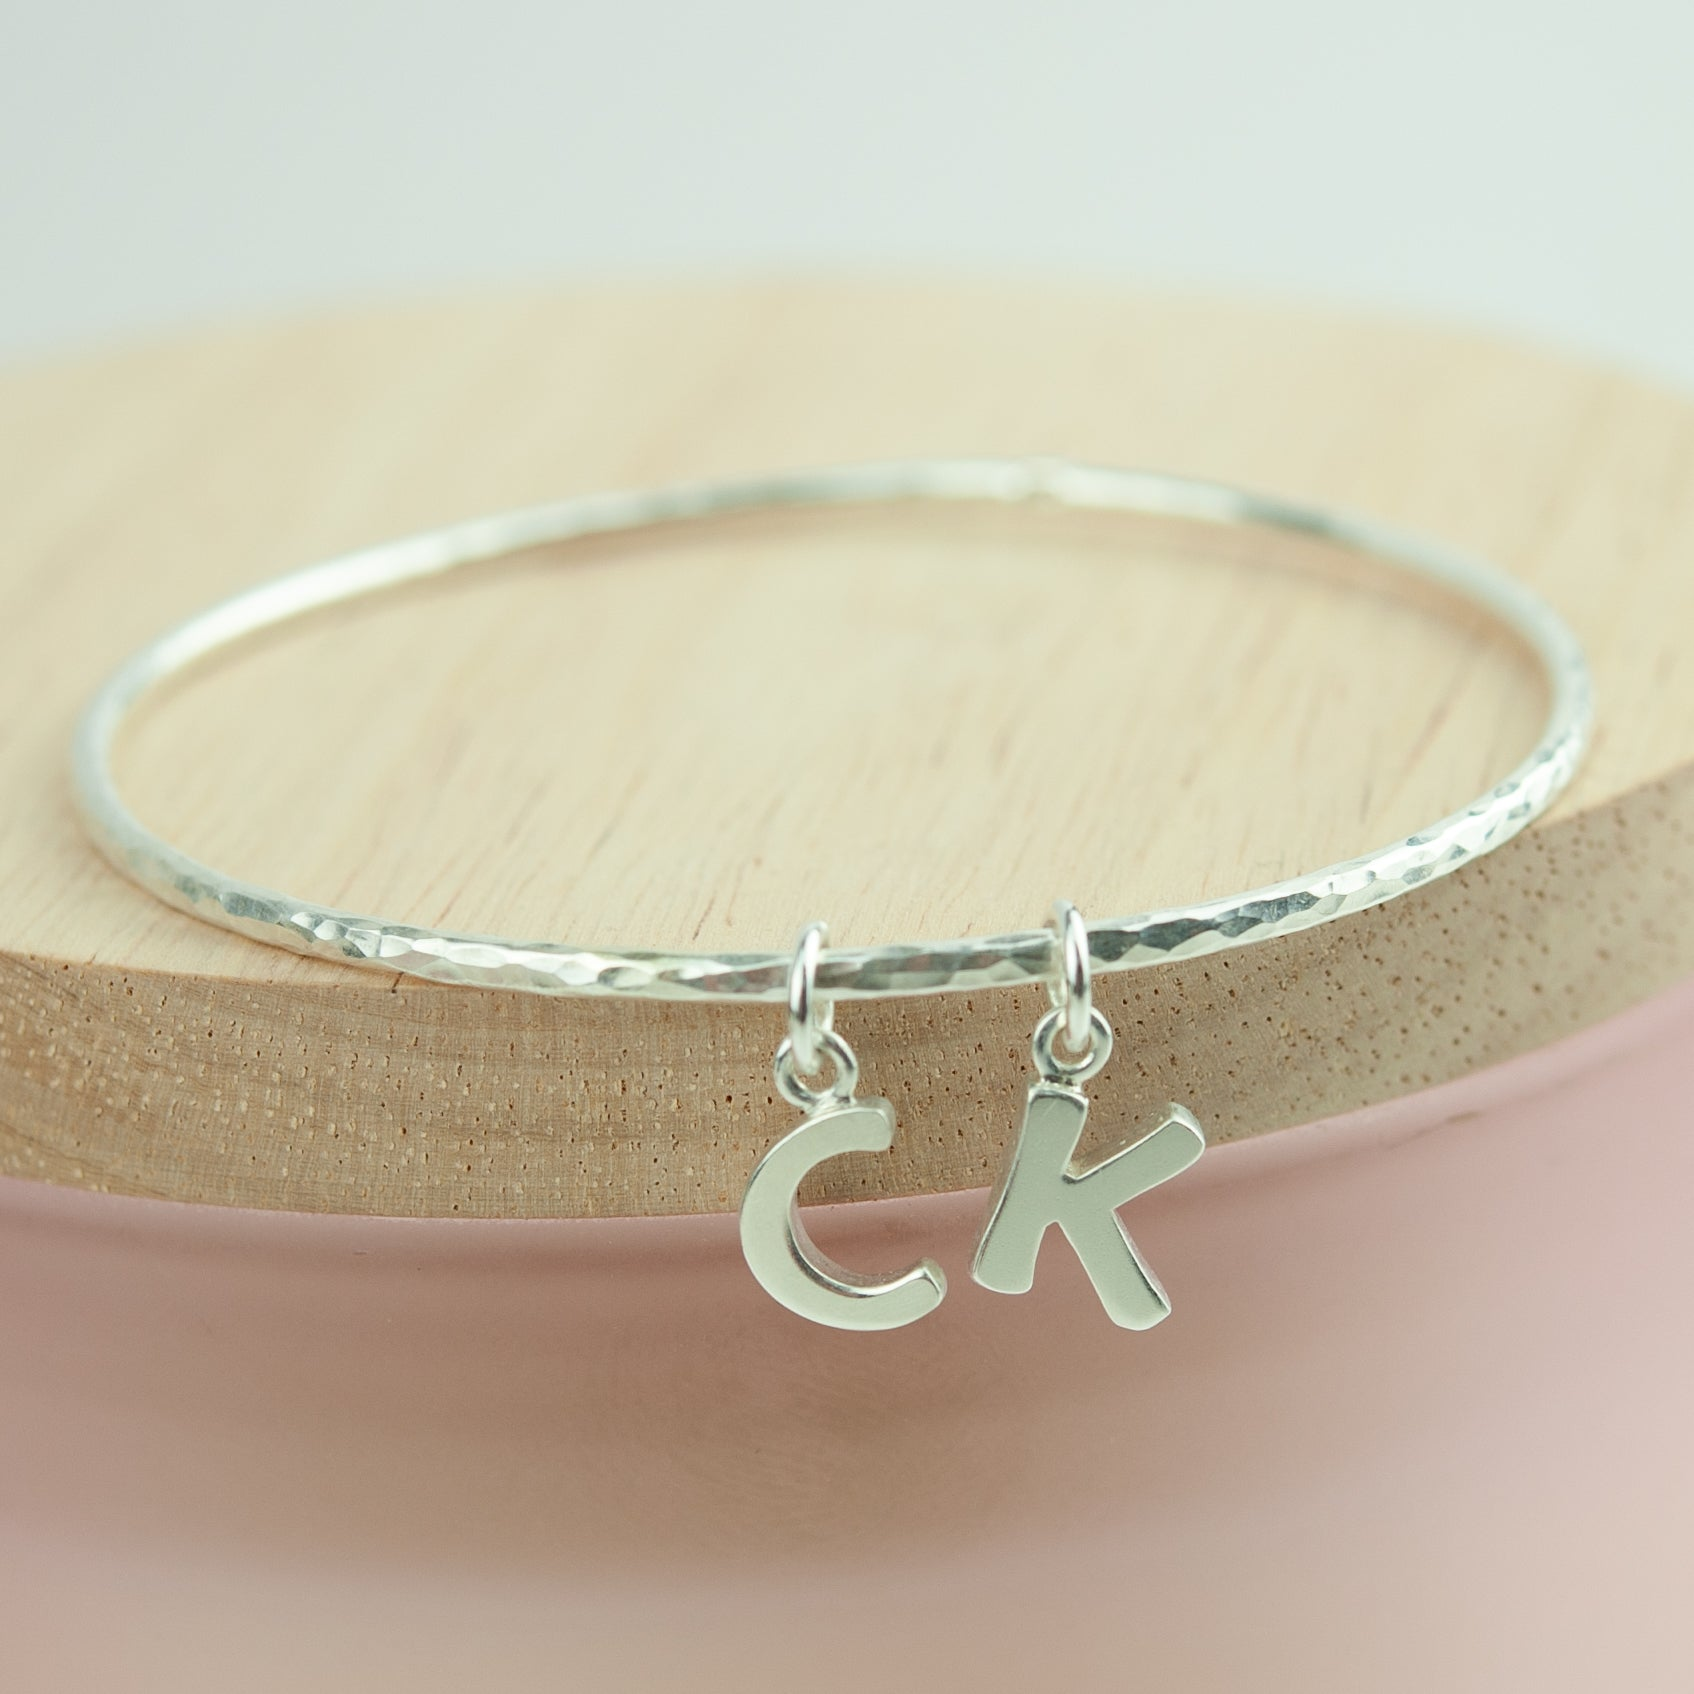 Belle & Bee alphabet bangle